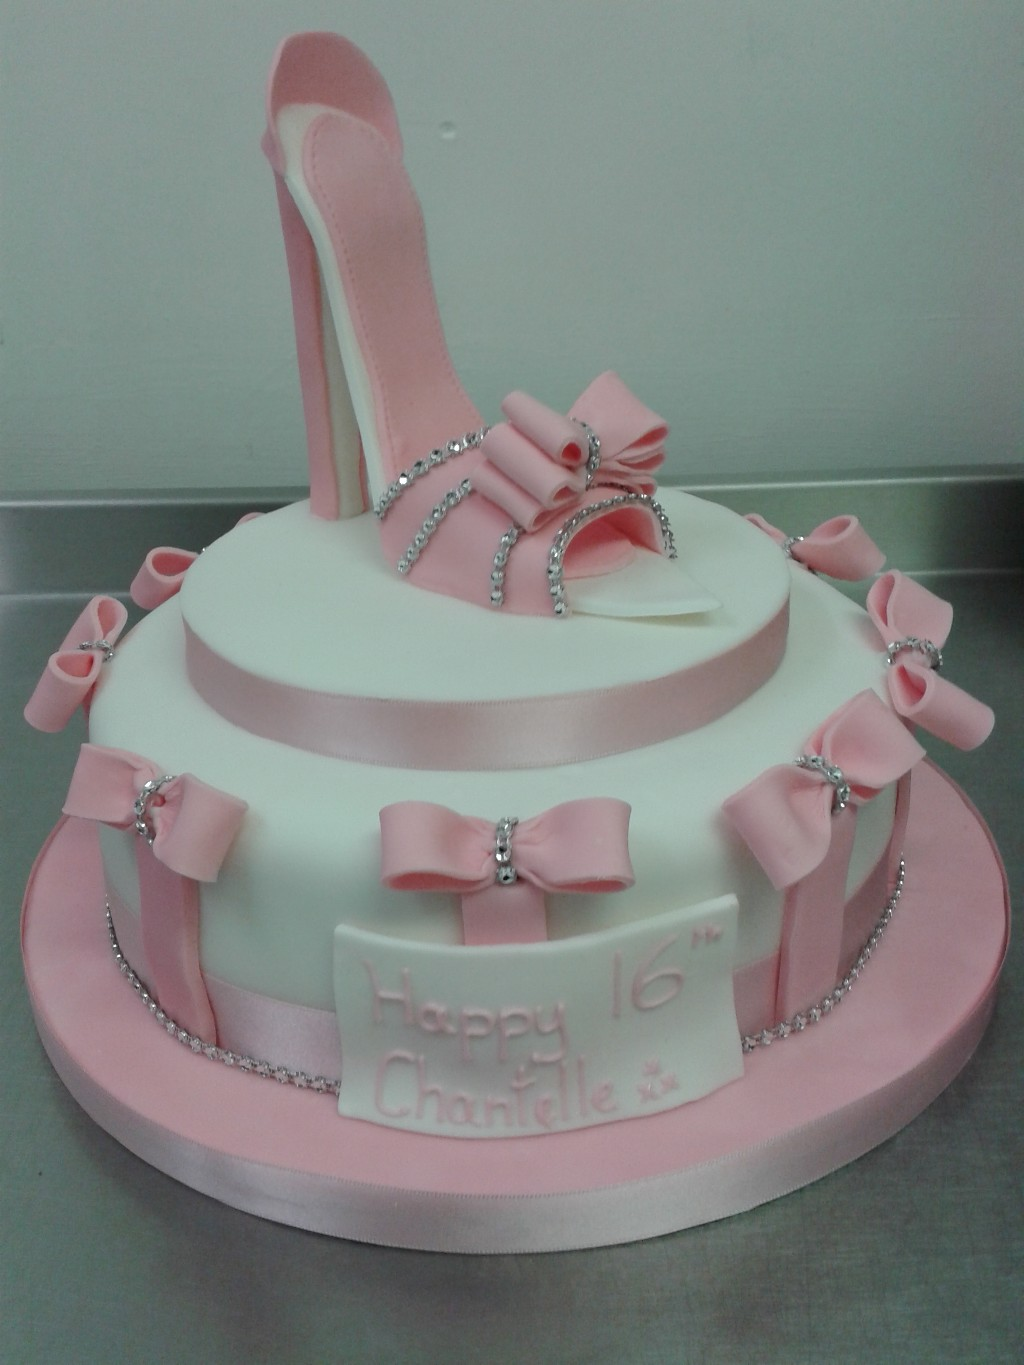 High Heel Girly Pink 16th Birthday Cake Crumbs Cake Shop Sheffield